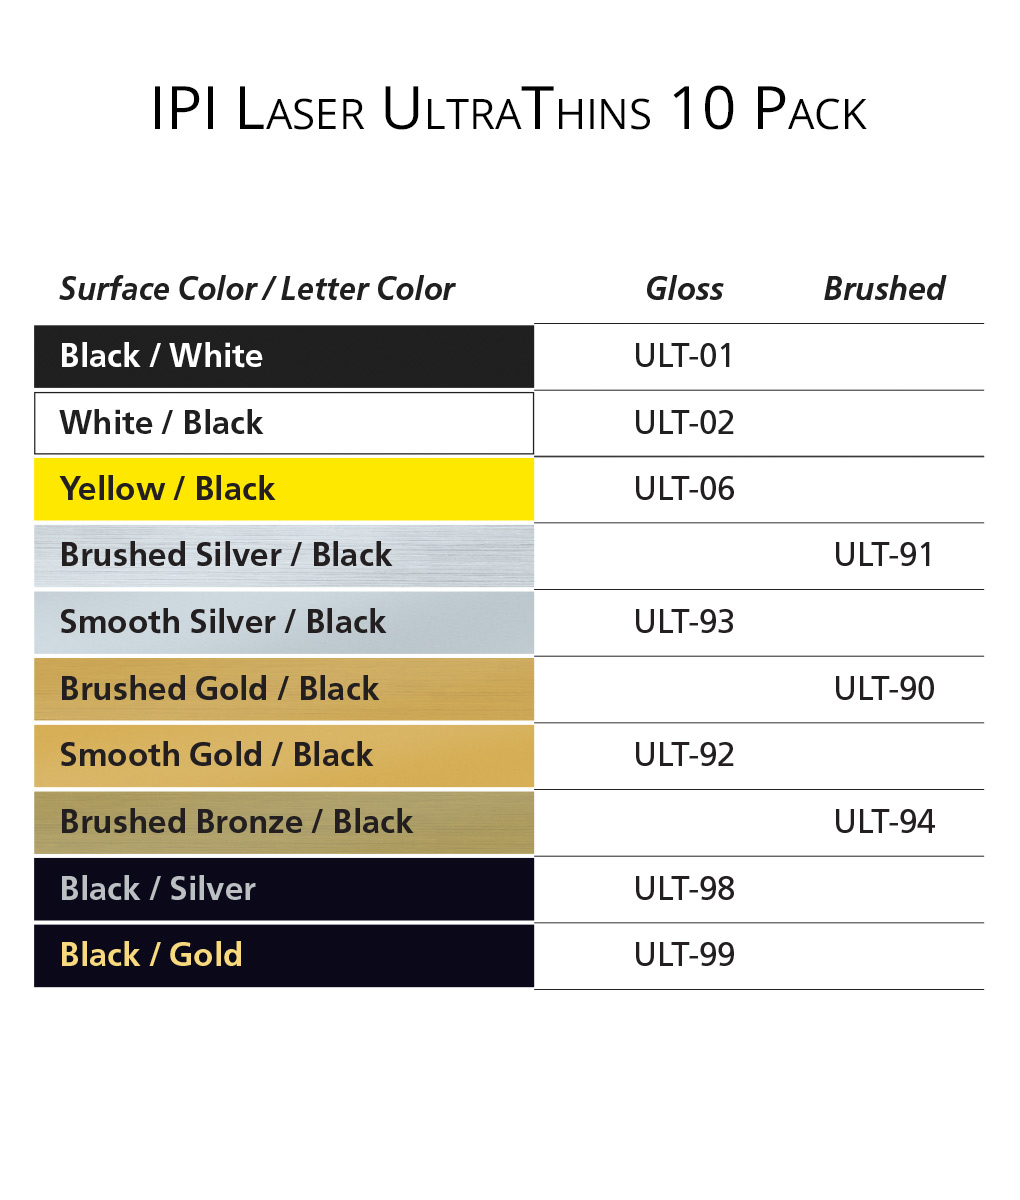 IPI Laser UltraThins - engraving material color options from Main Trophy Supply